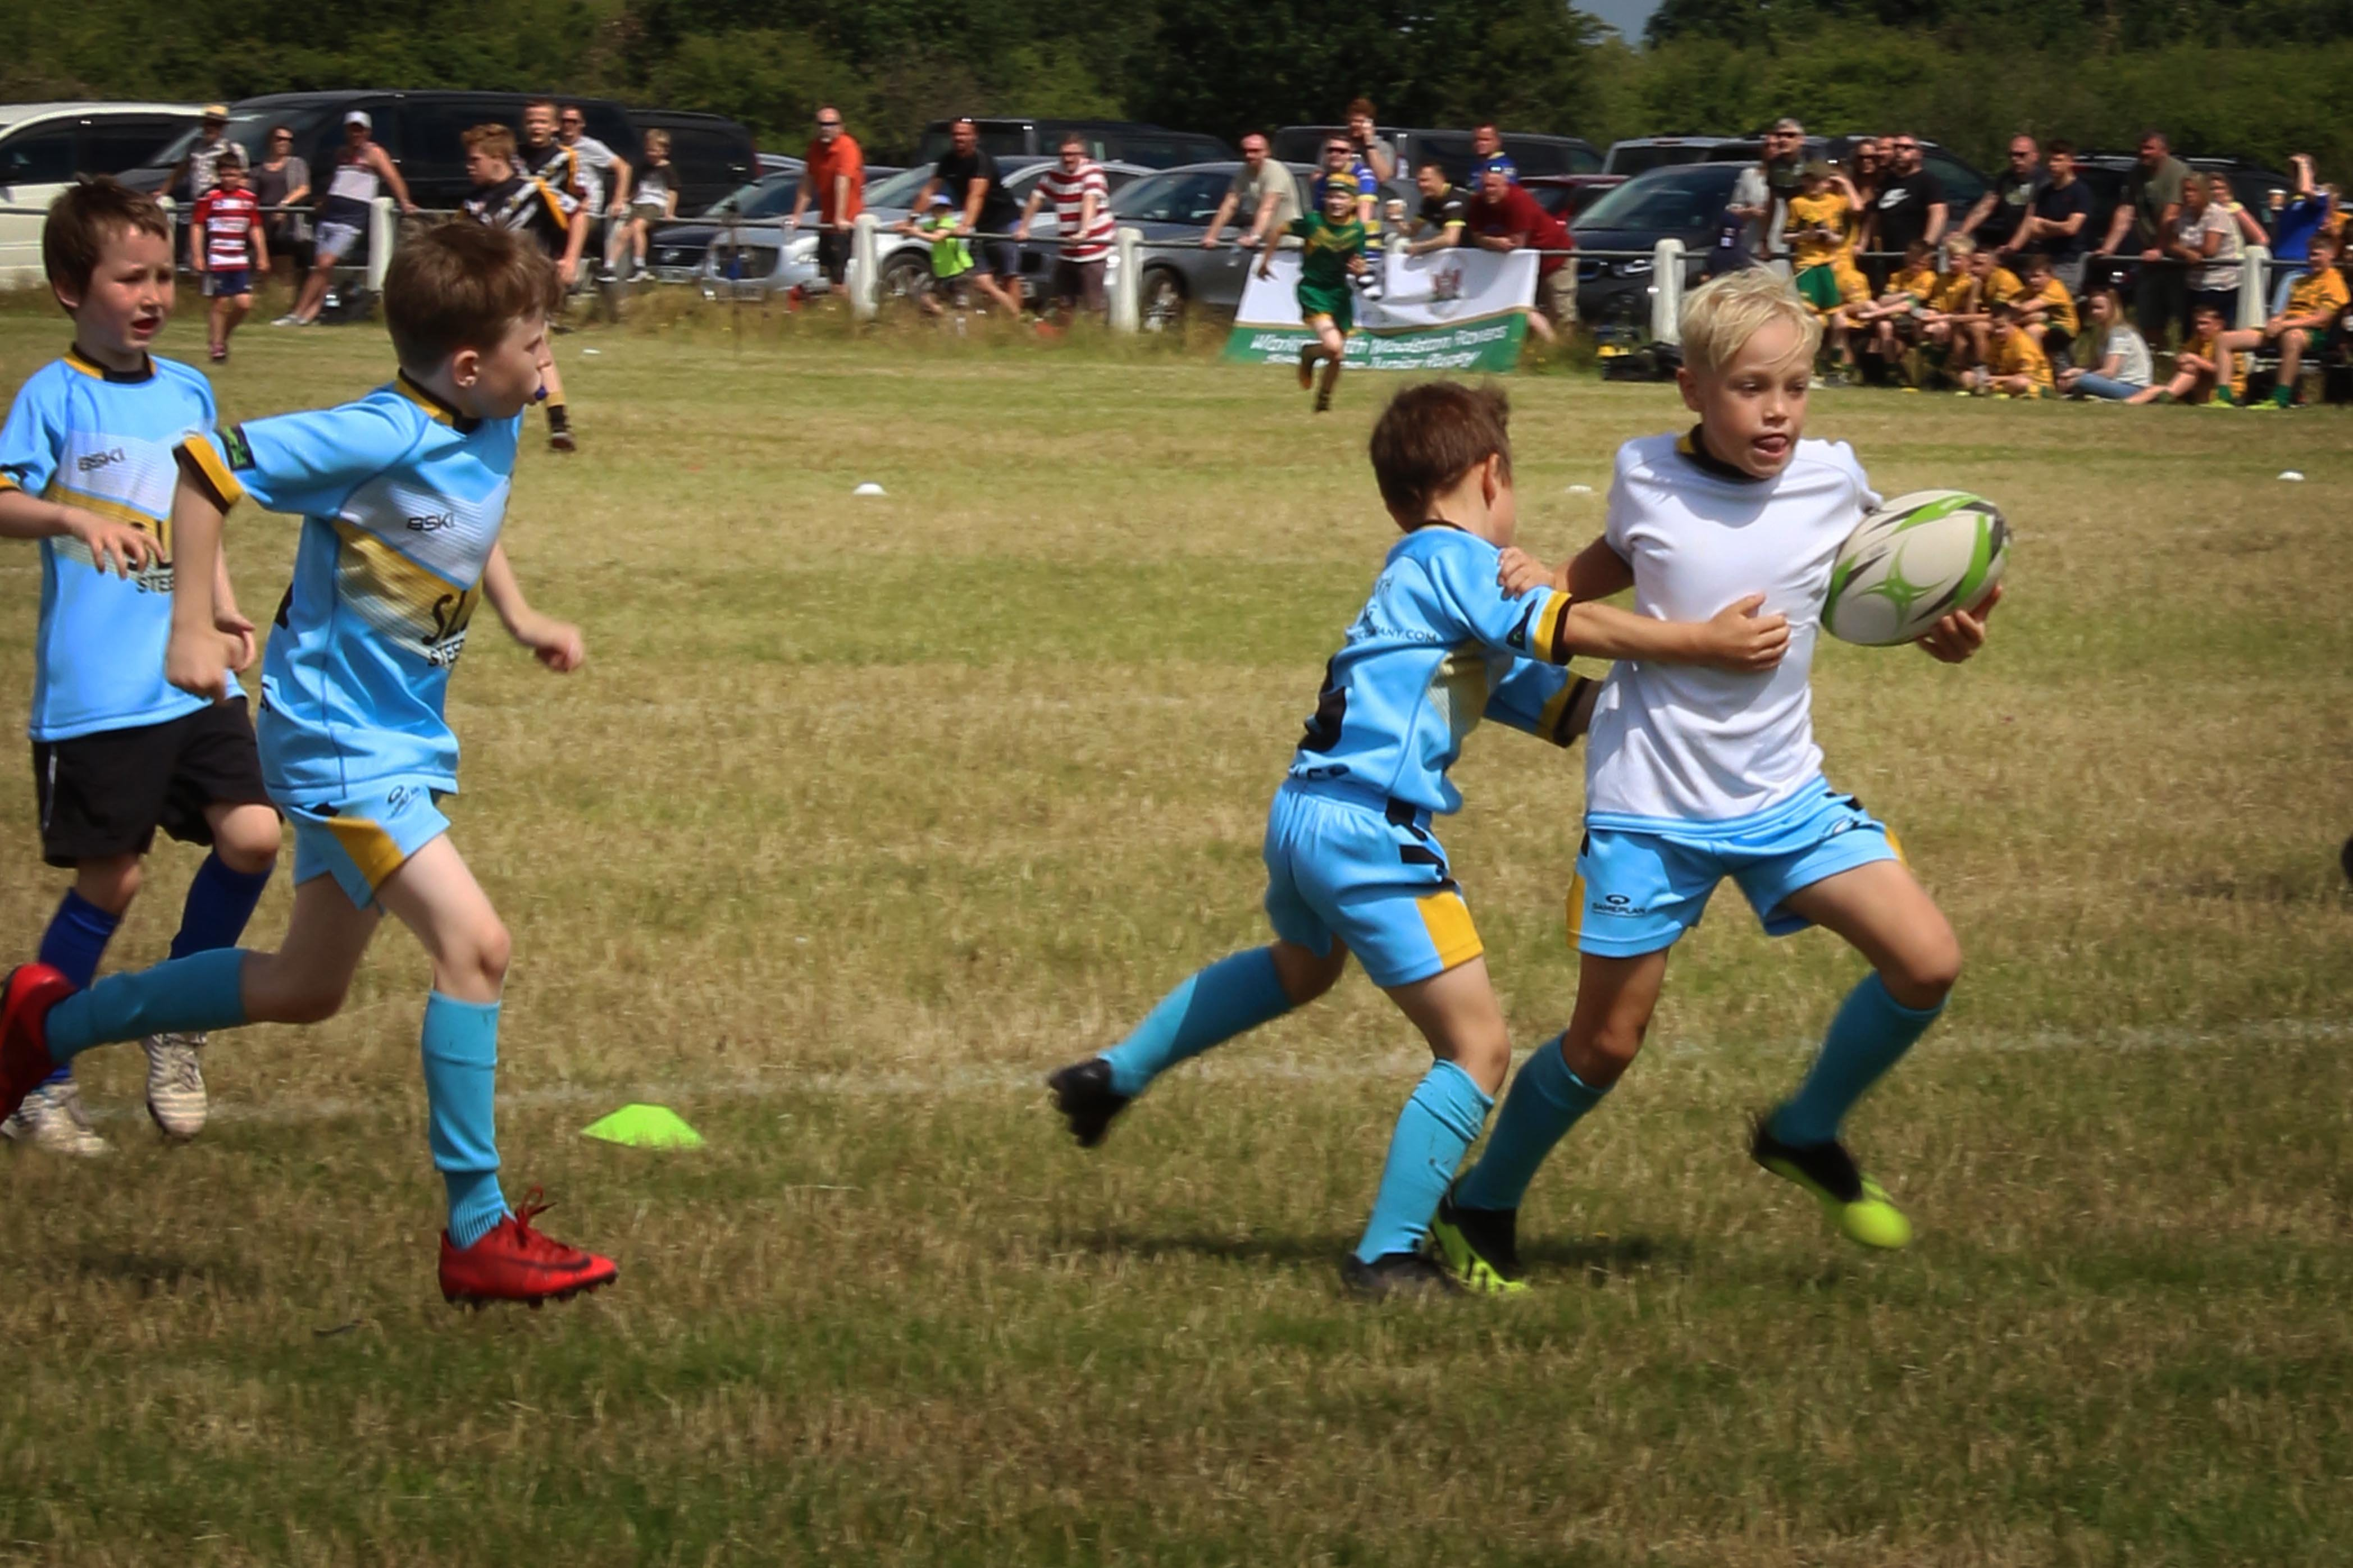 U9s Elmbridge vs Elmbridge 7